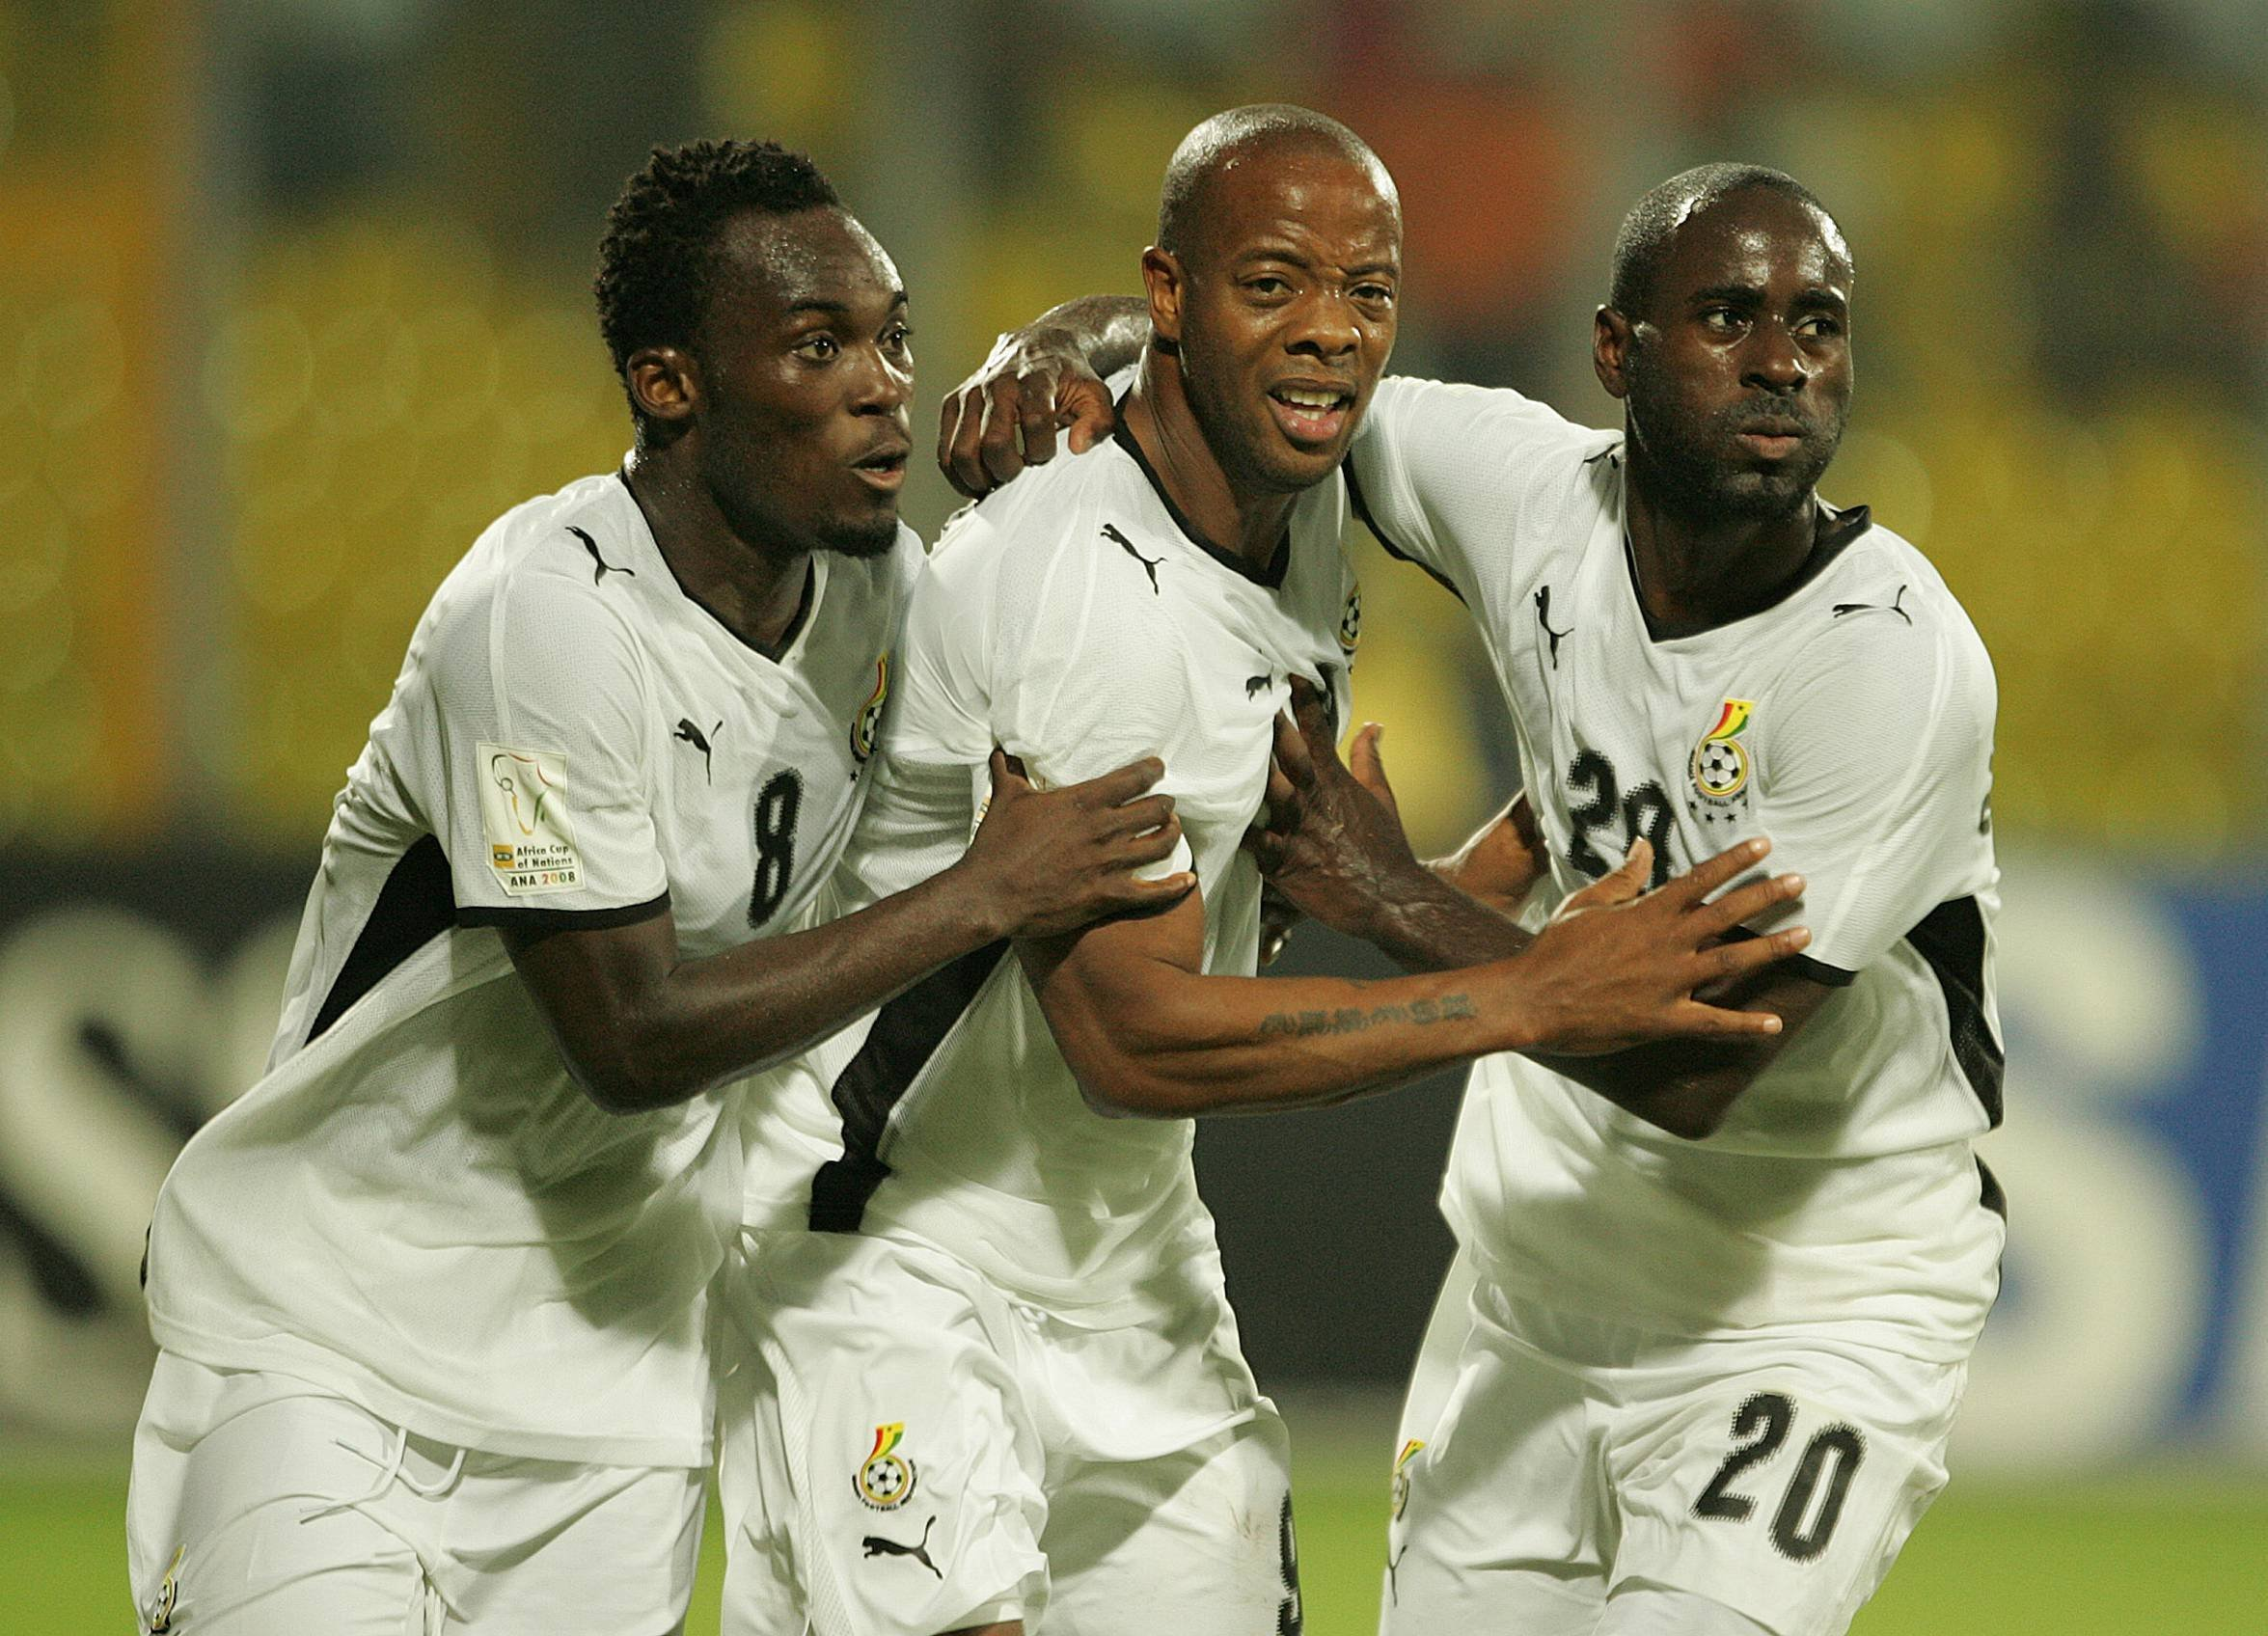 Former Ghana international and 'fan favorite' Junior Agogo dies at 40